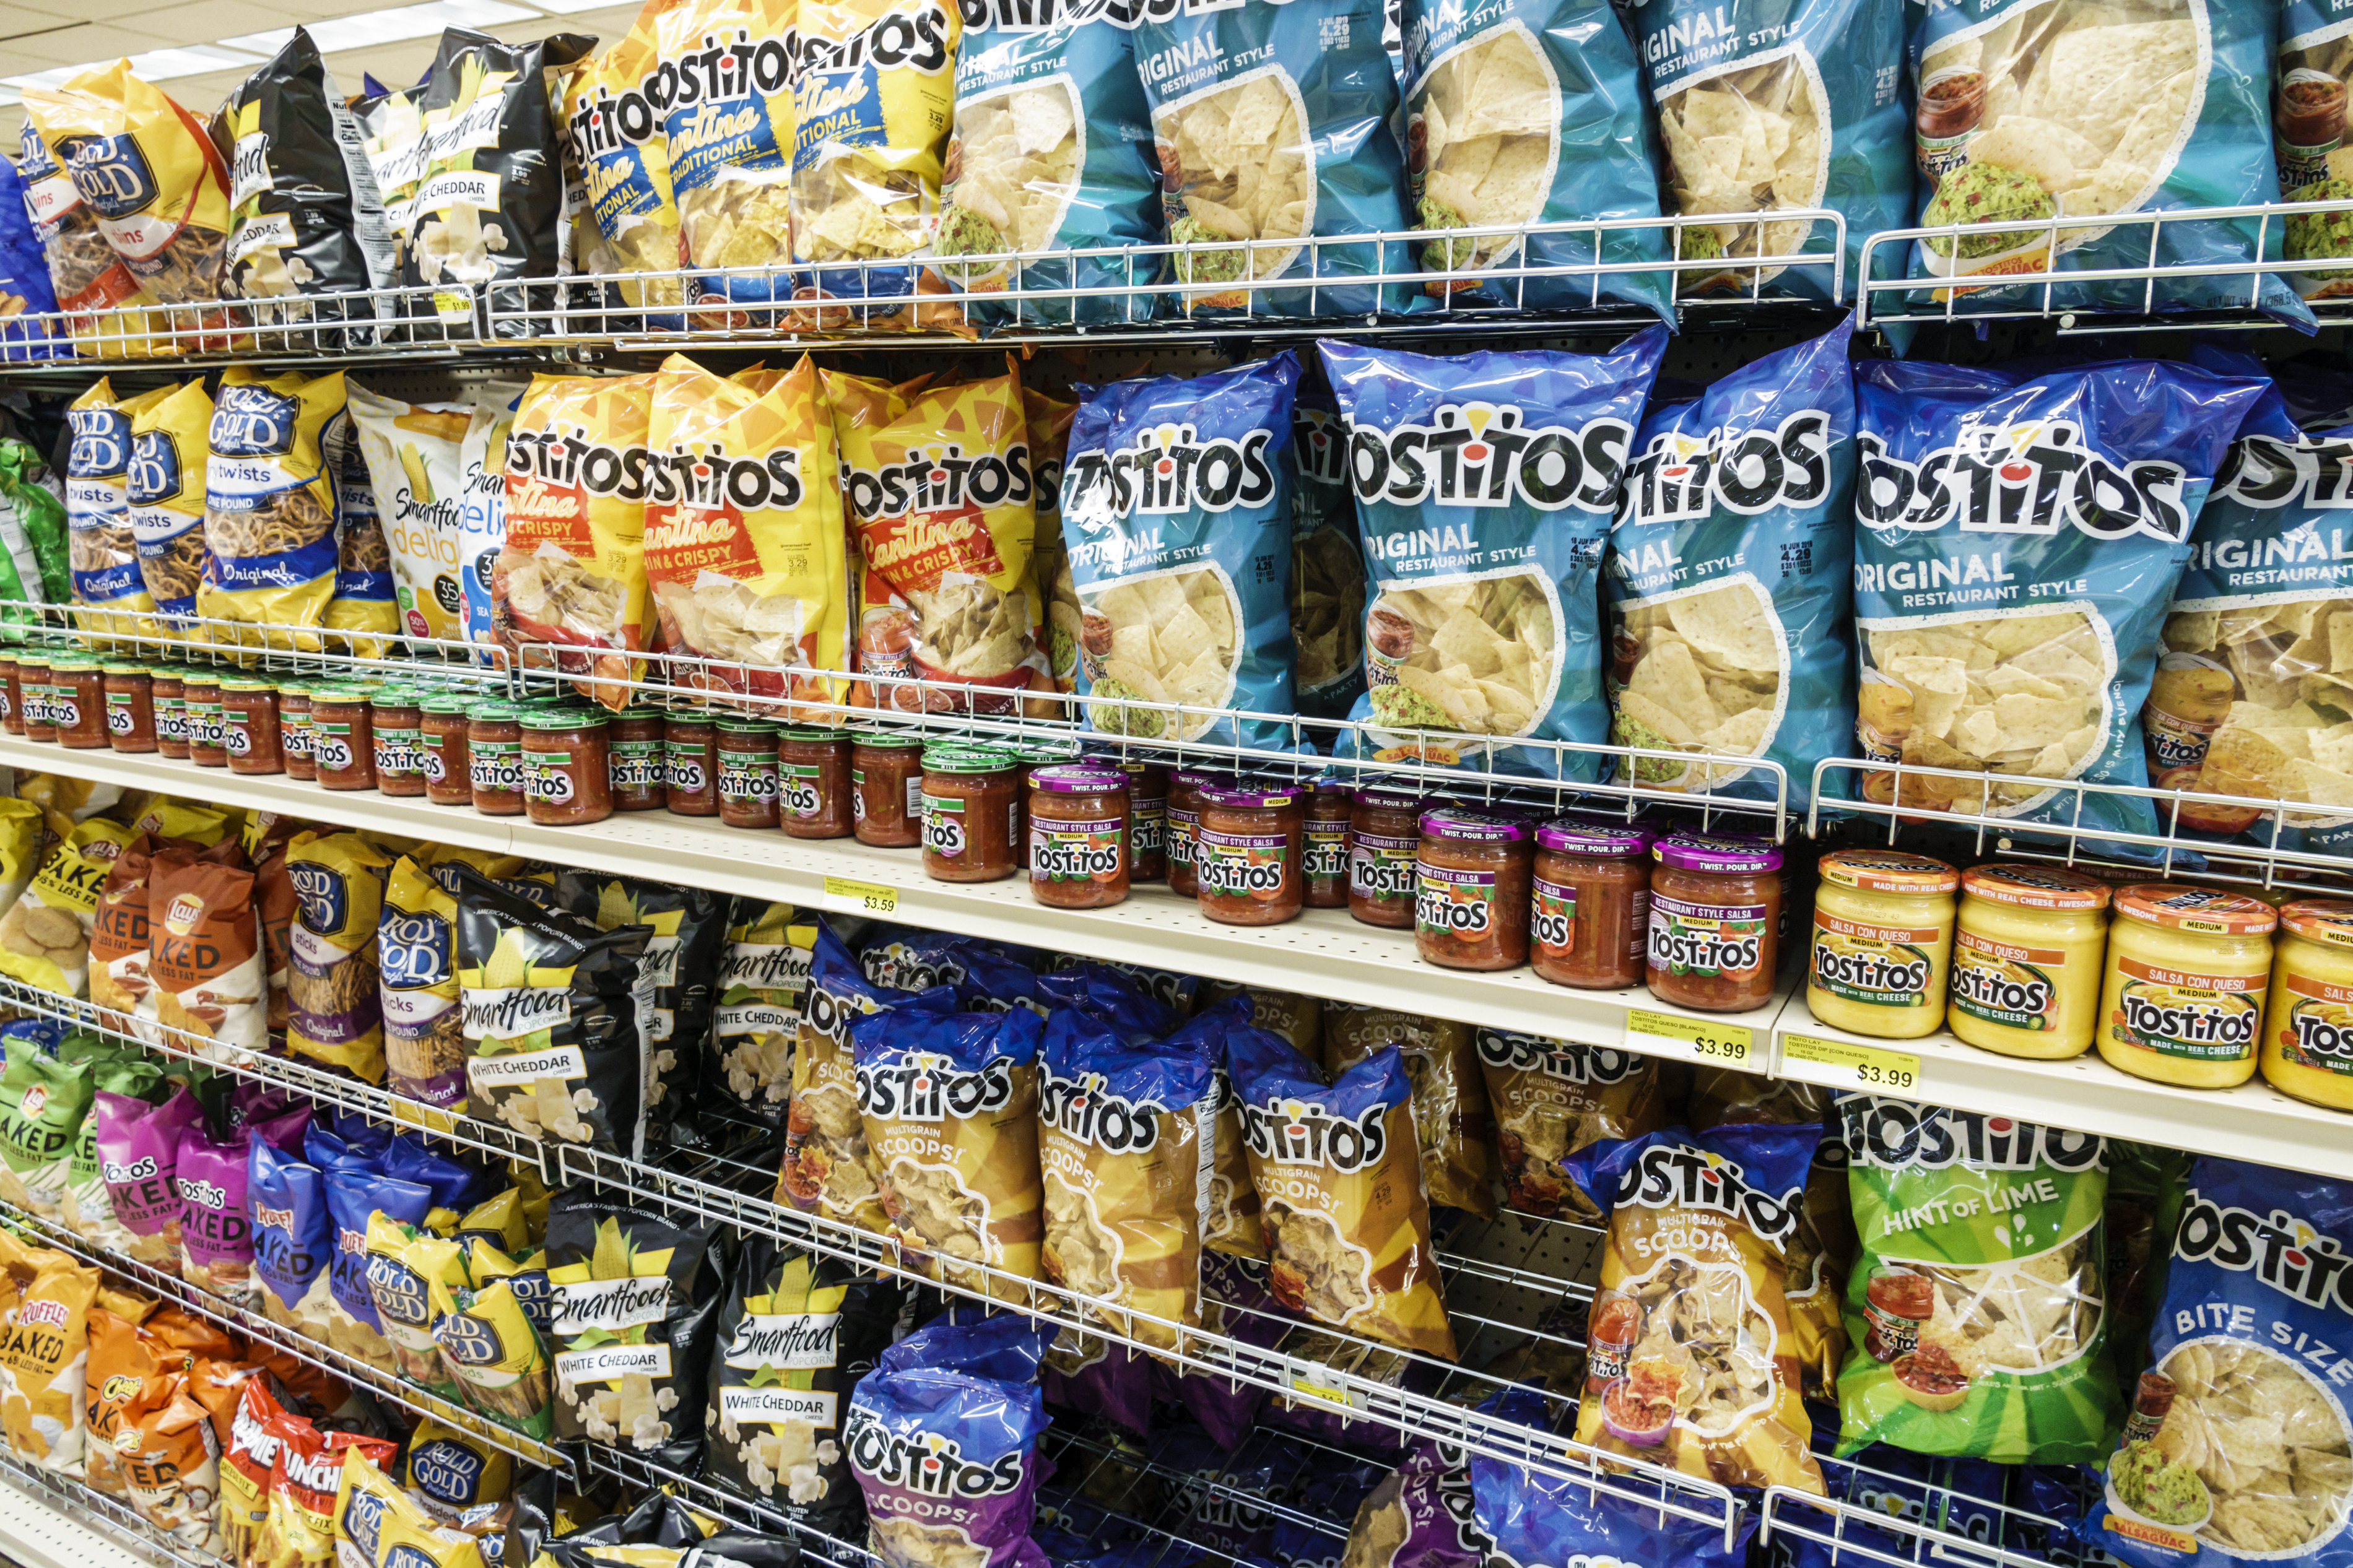 Sanibel Island, Jerrys Foods, grocery store, chips aisle